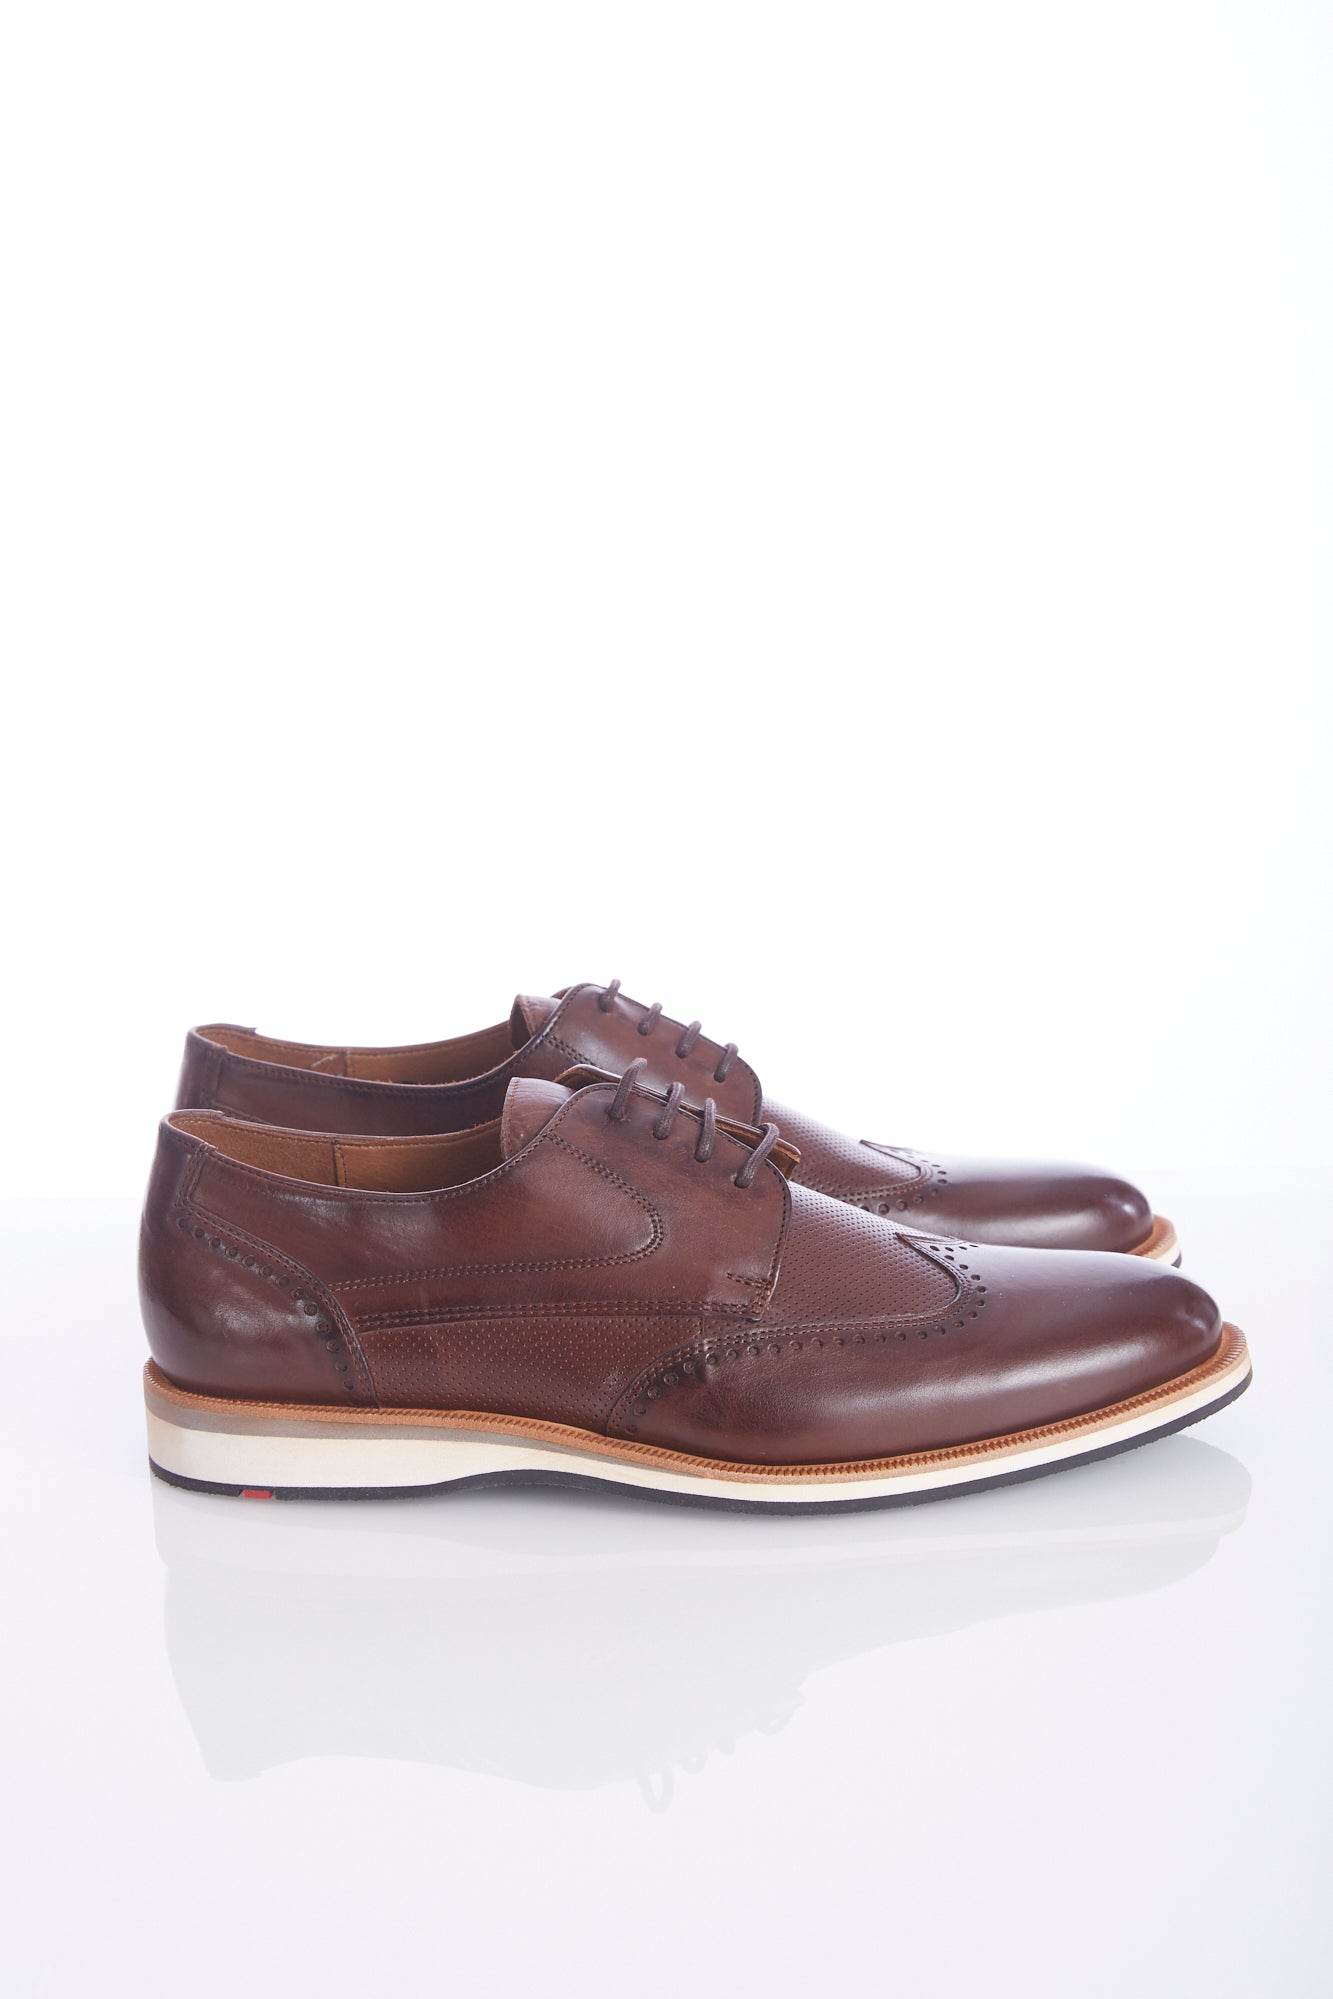 Lloyd 'Odil' Chestnut Brown Wingtip